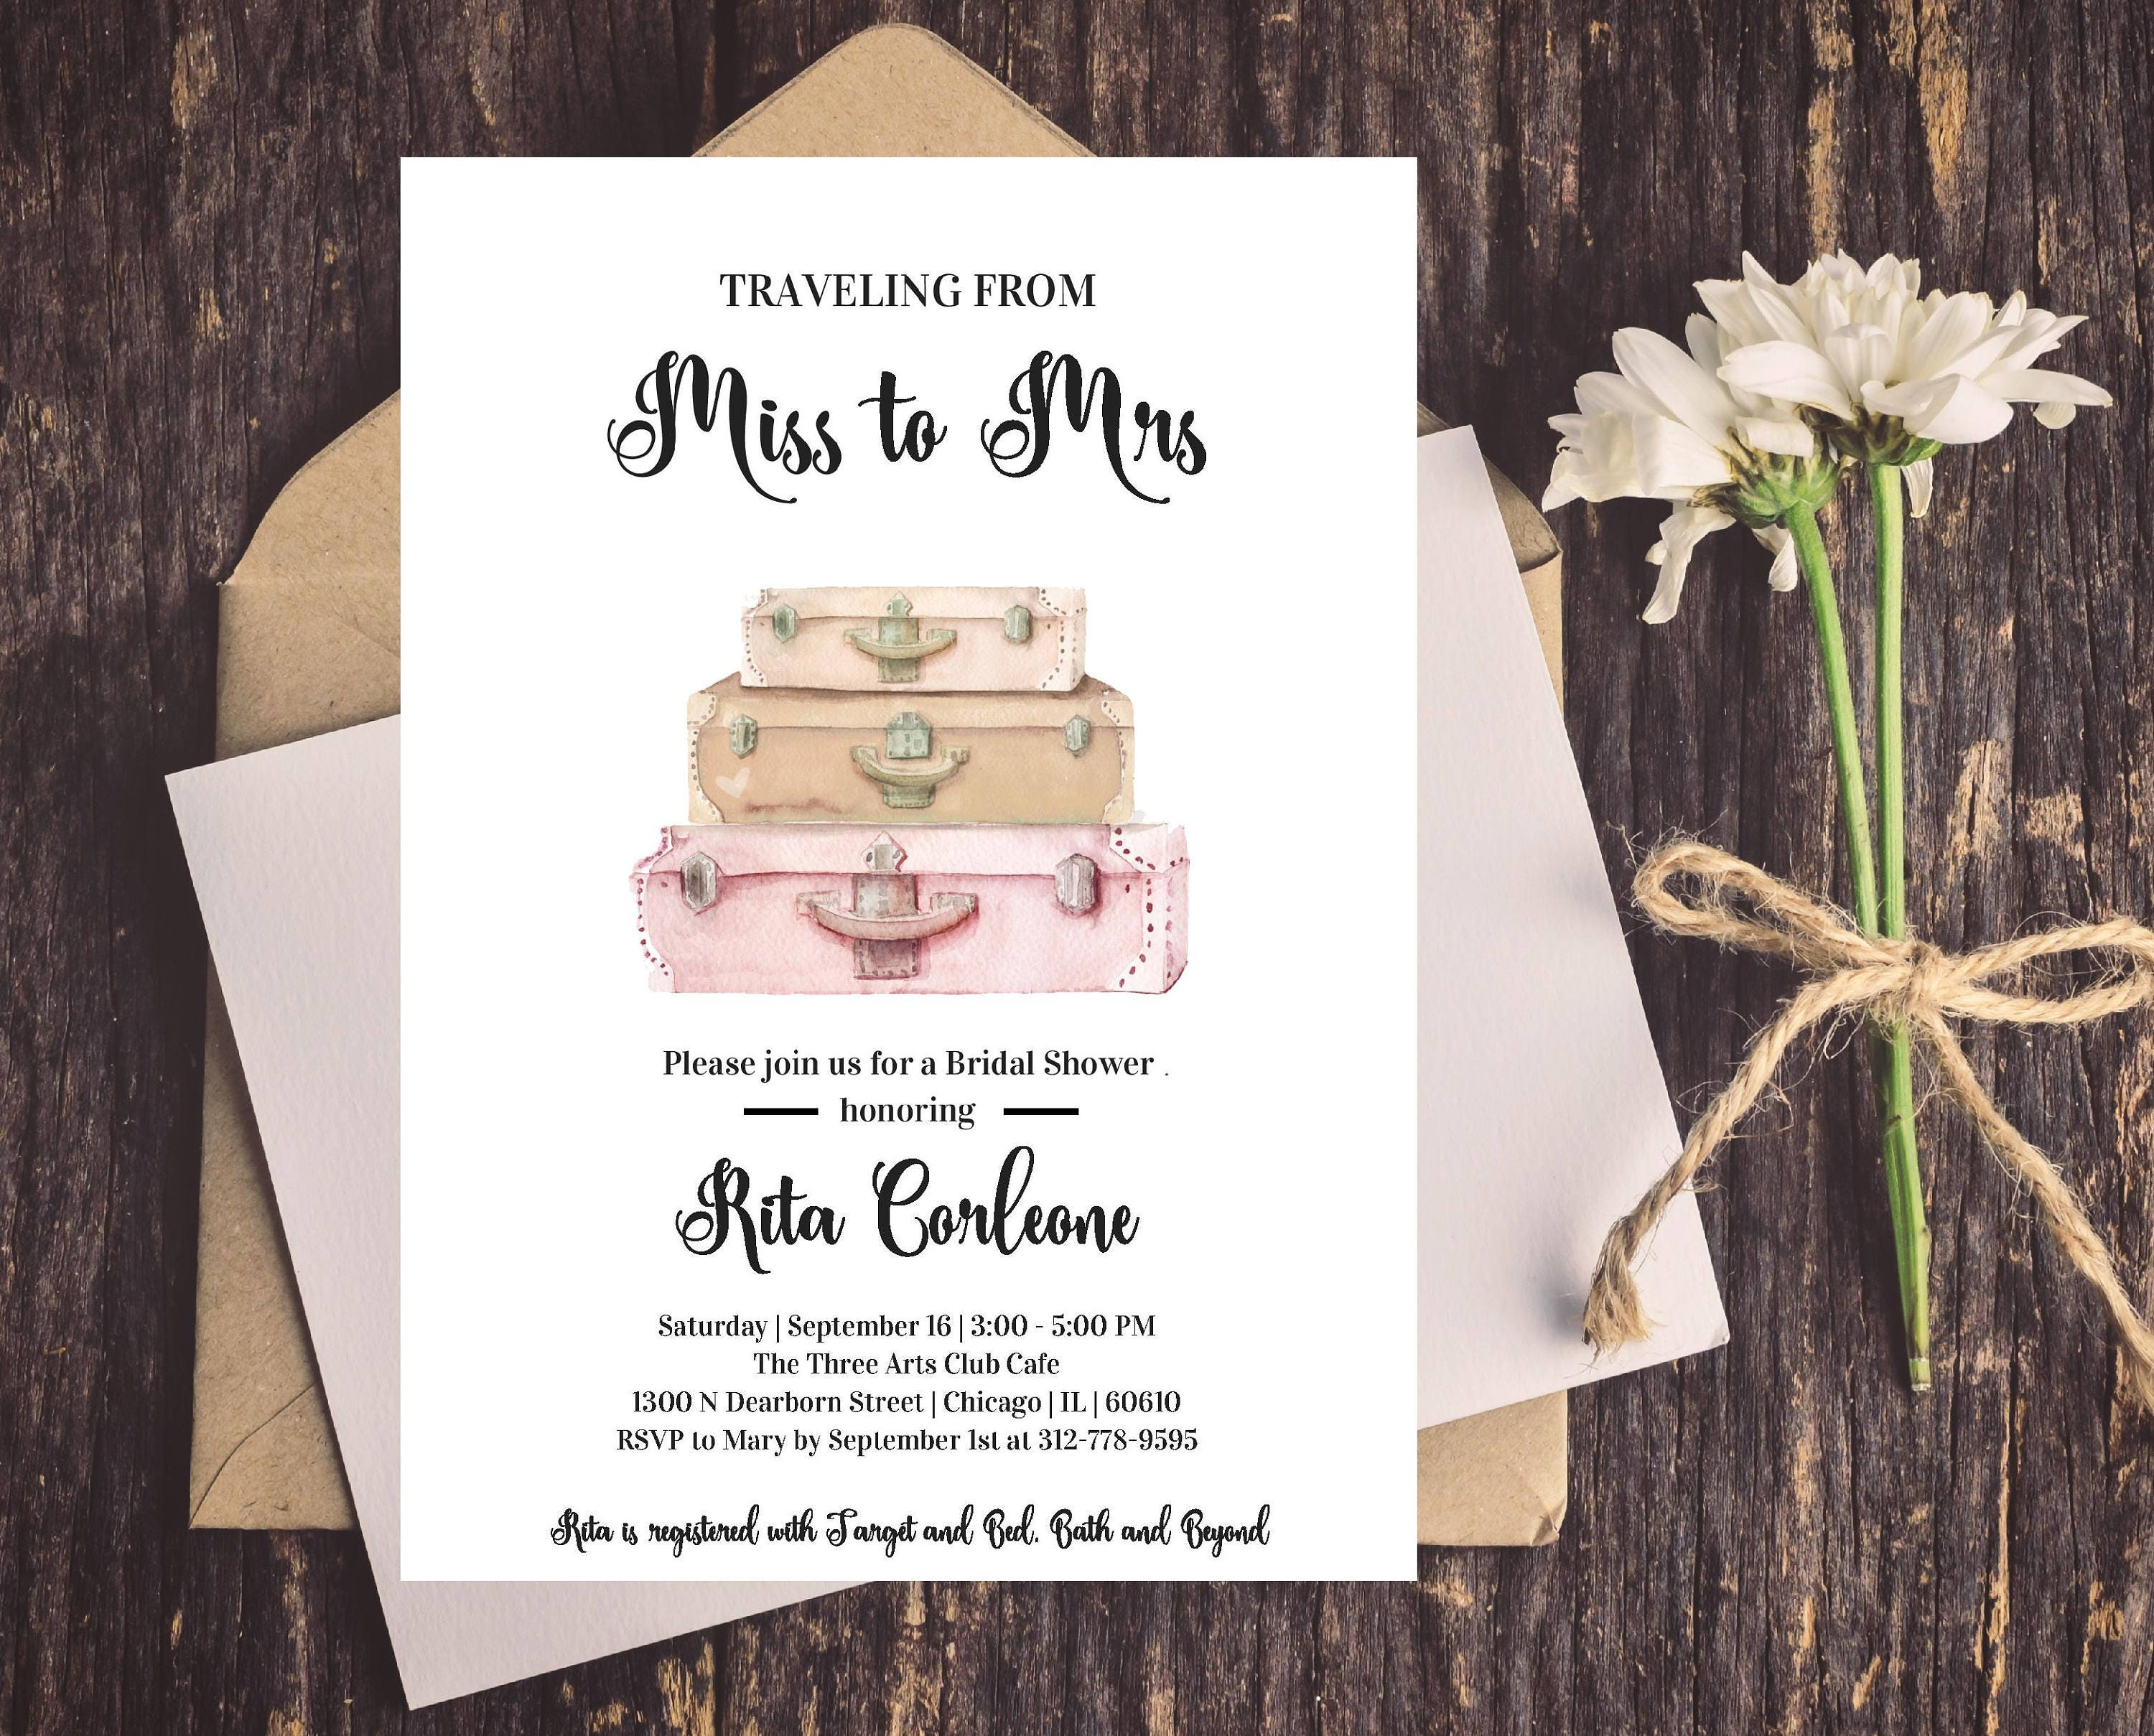 famous traveling from miss to mrs theme bridal shower invitations wx68